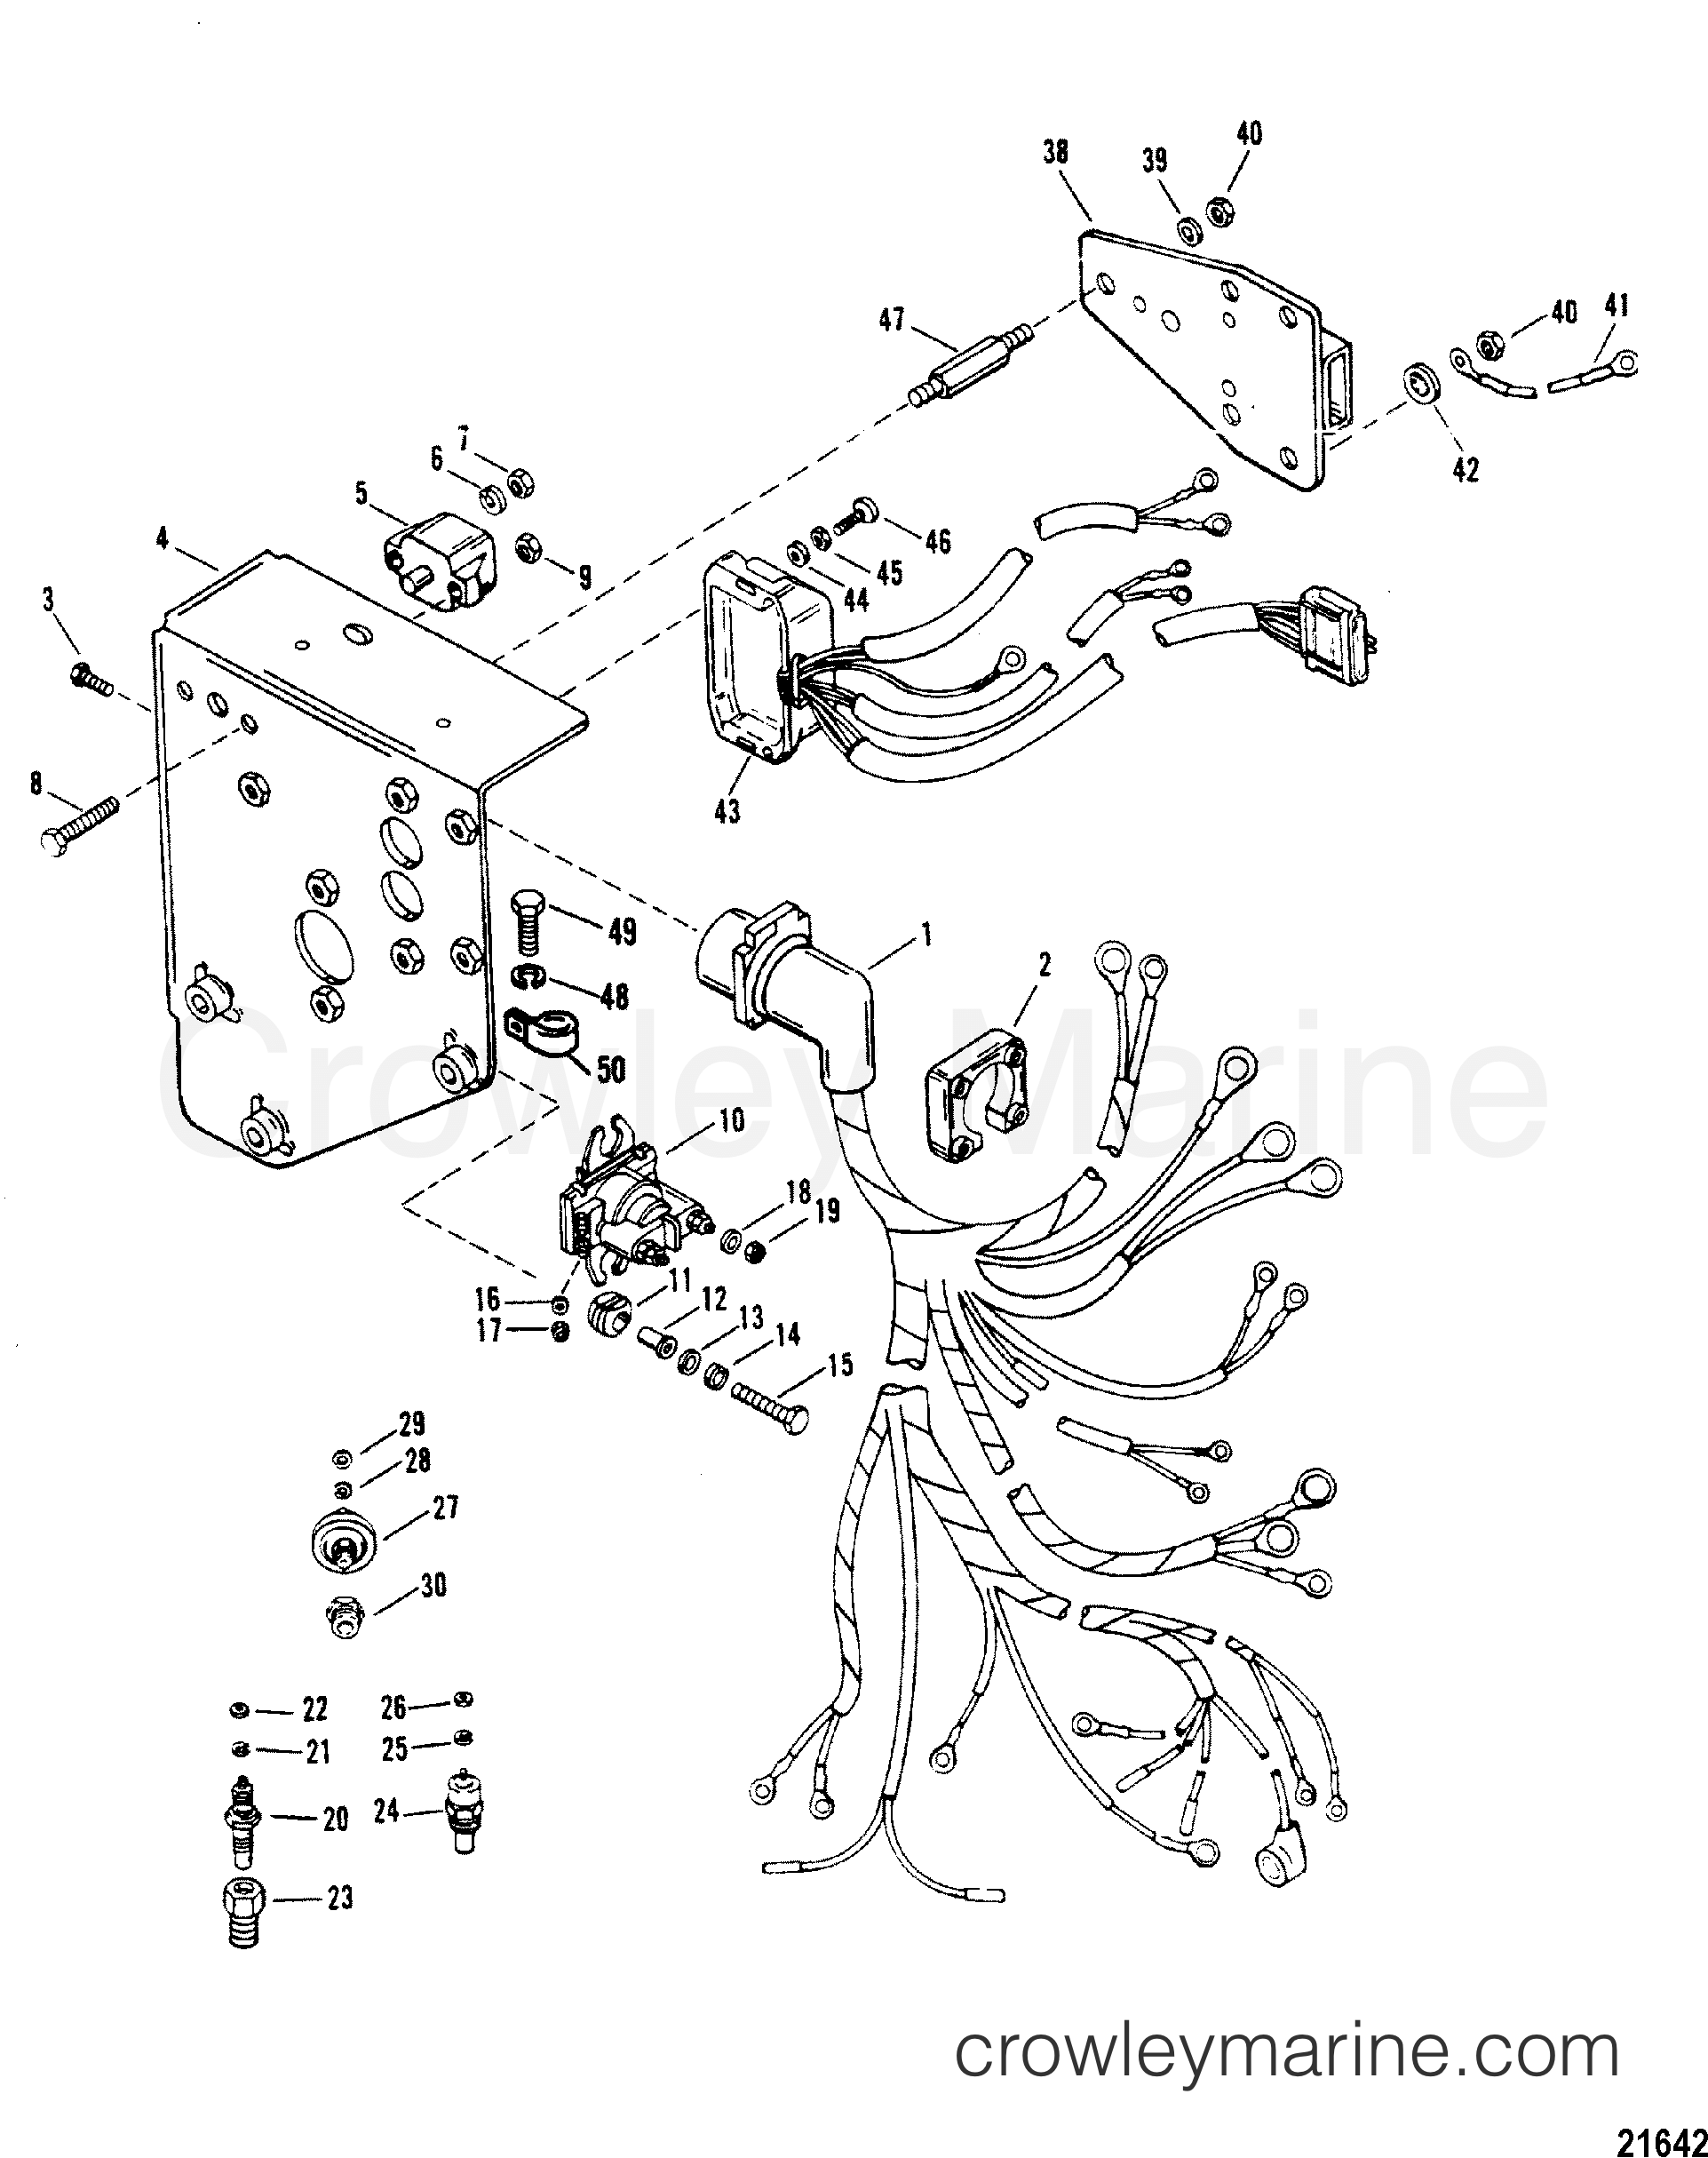 87 mercruiser 5 0 engine diagram  diagram  auto wiring diagram